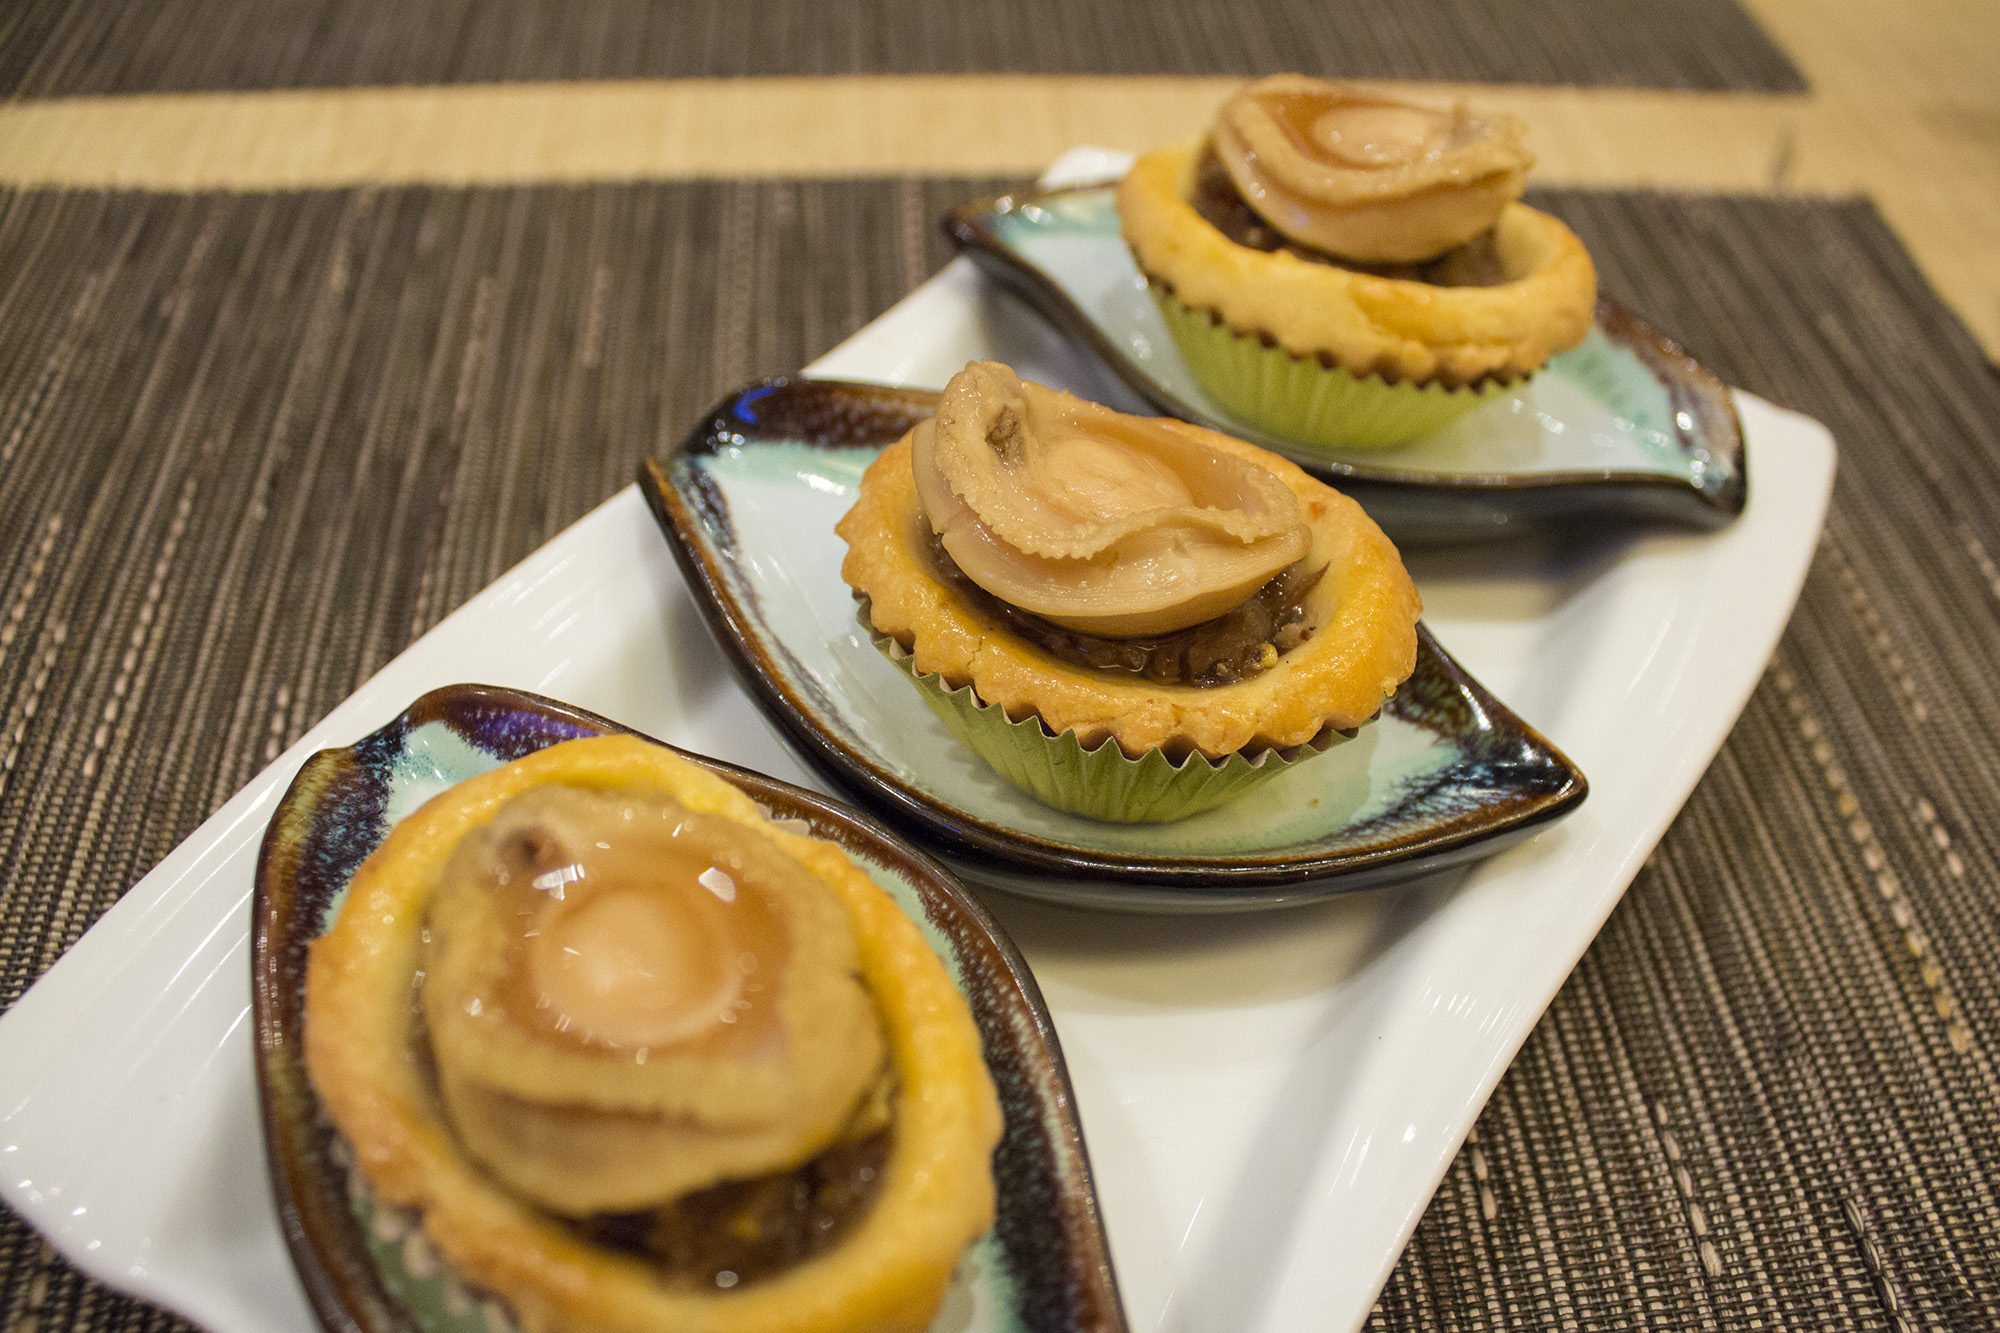 Baked Abalone and Chicken Pastry